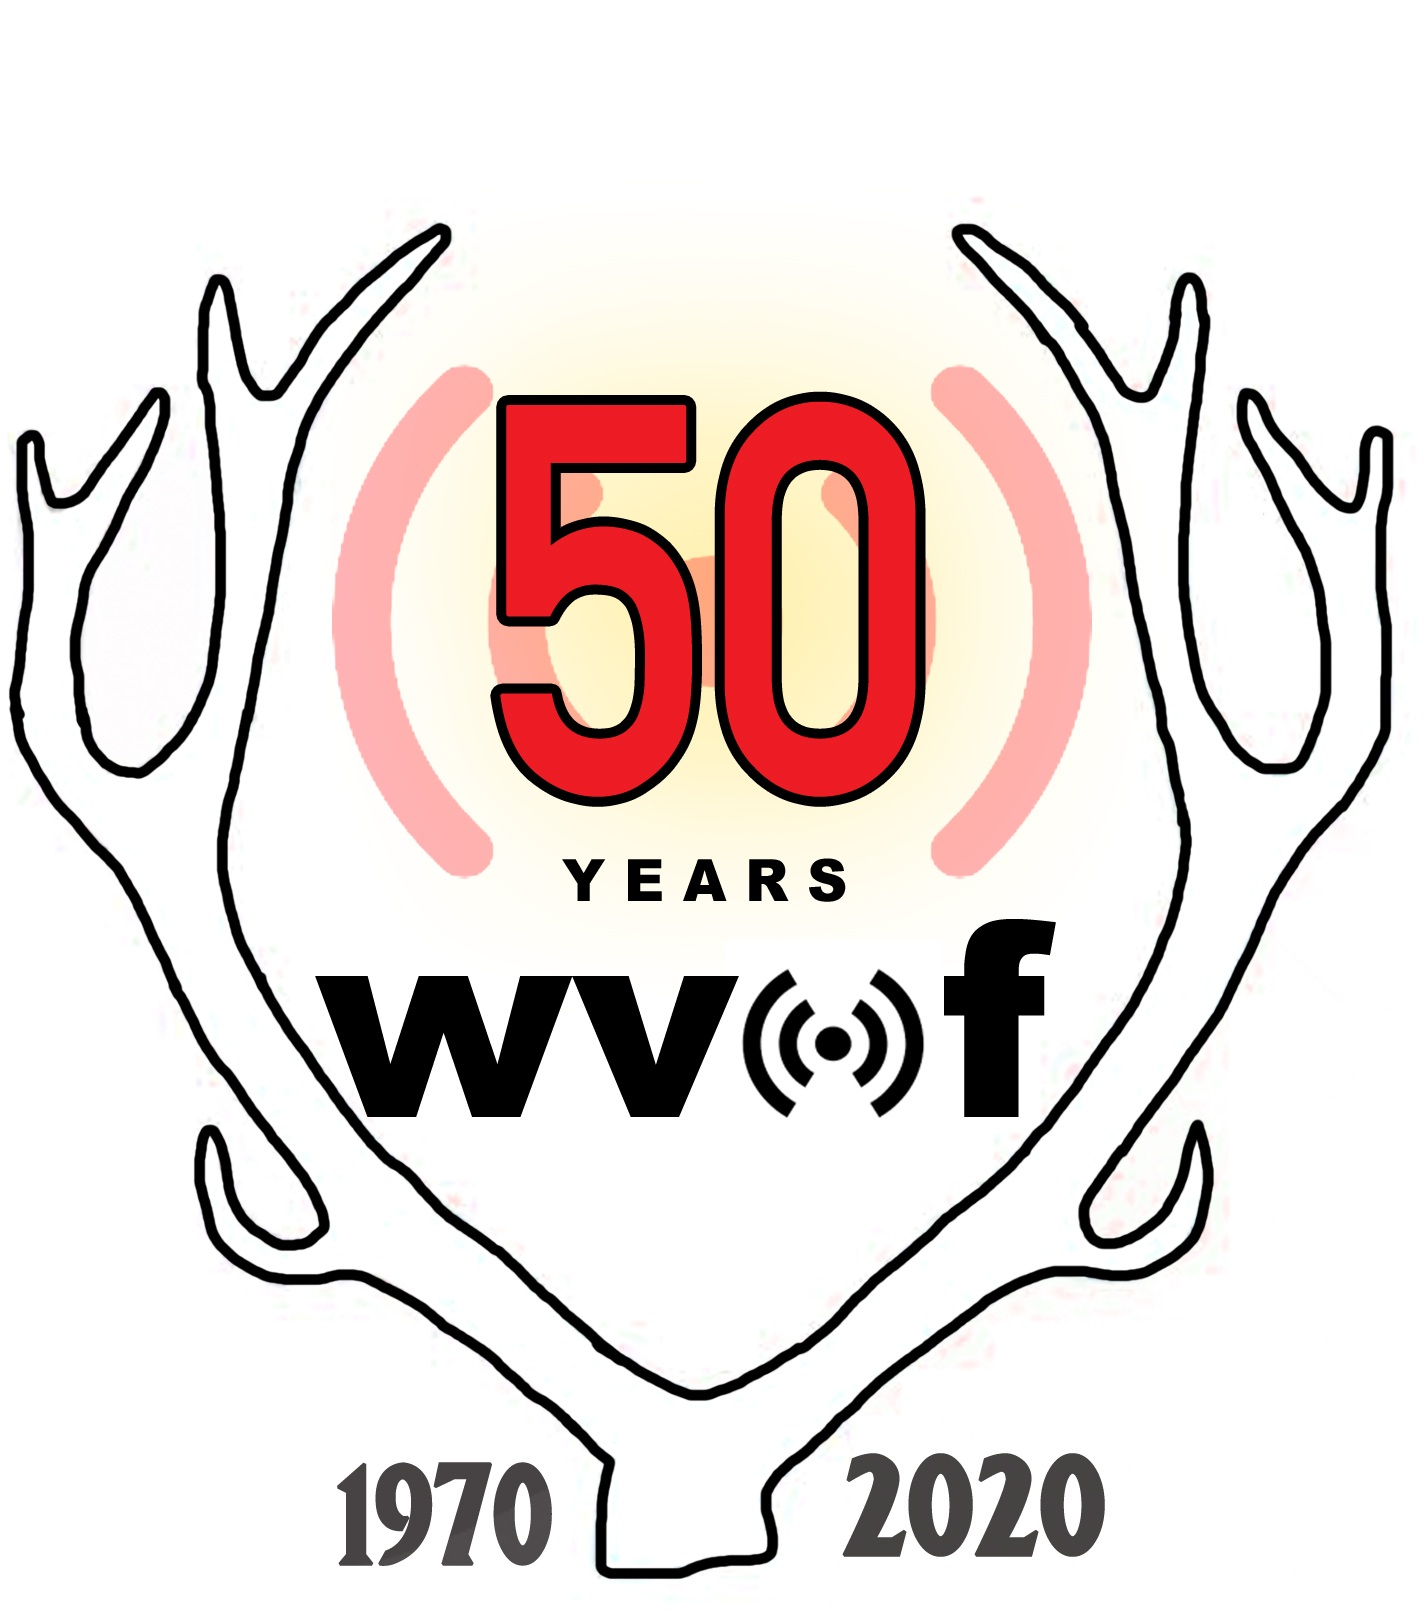 WVOF Fairfield University Radio